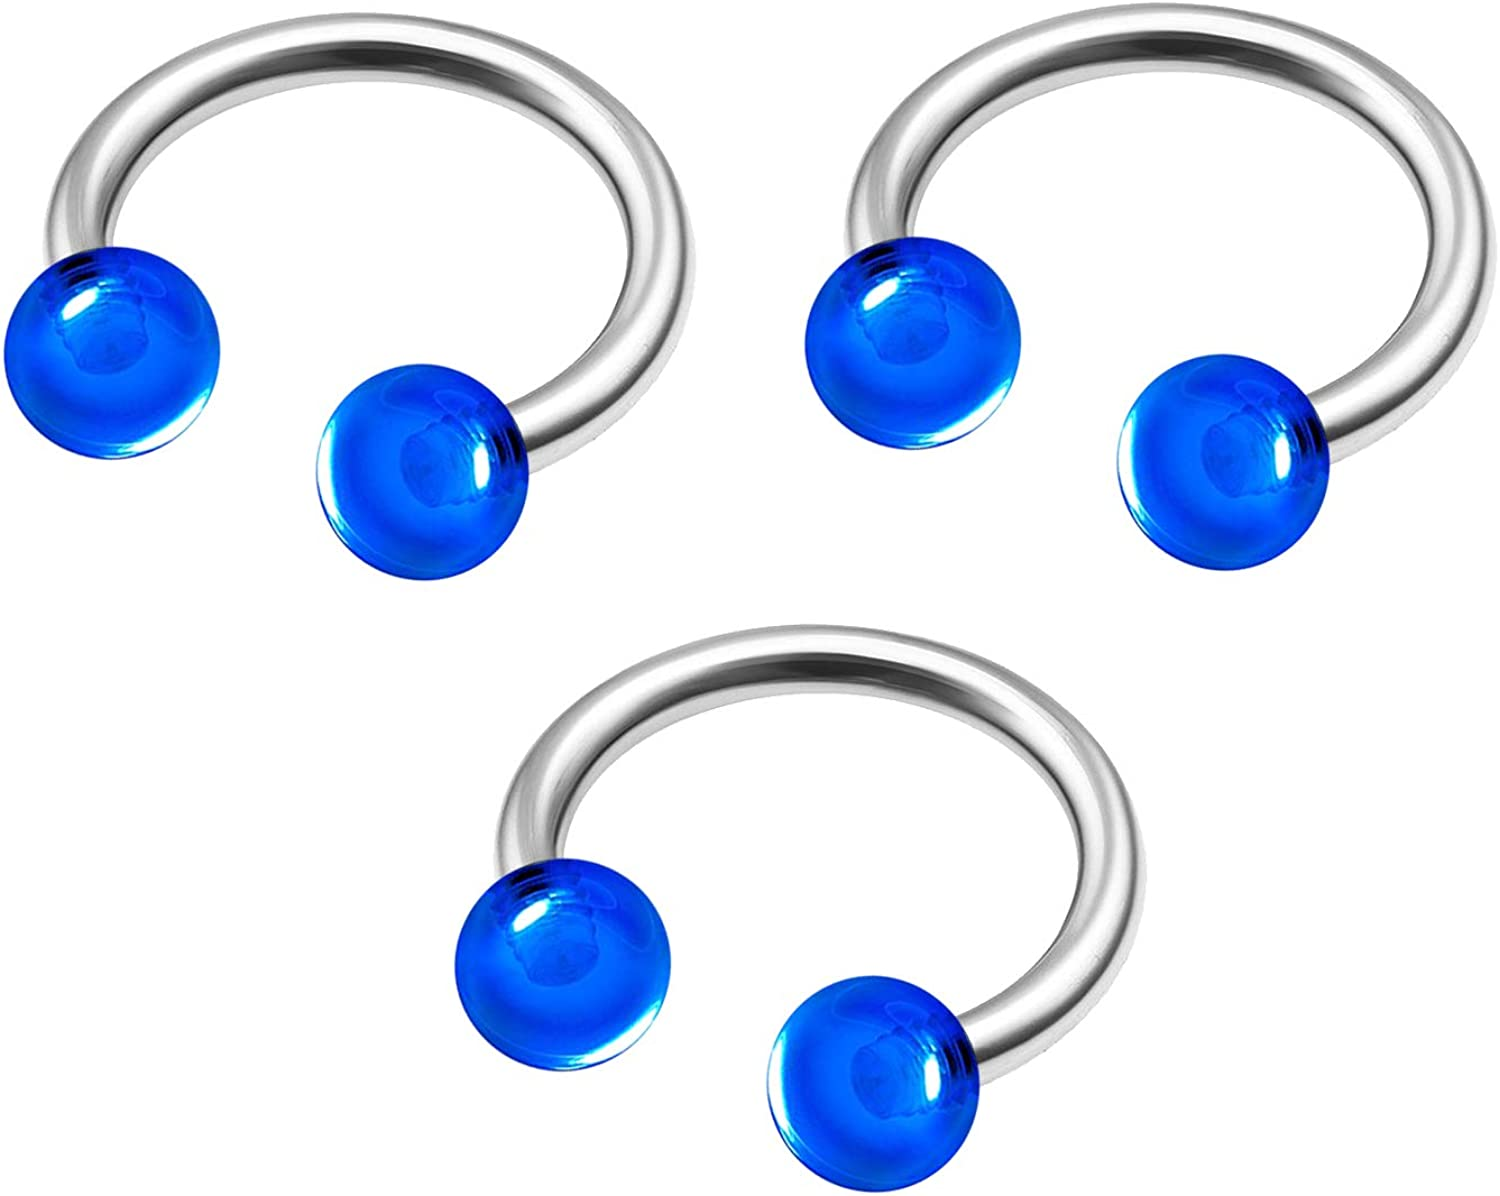 MATIGA 3Pcs Steel 16g 5/16 8mm Horseshoe Earring Piercing Jewelry Septum Nose Helix Tragus Cartilage 3mm Acrylic Ball More Choices